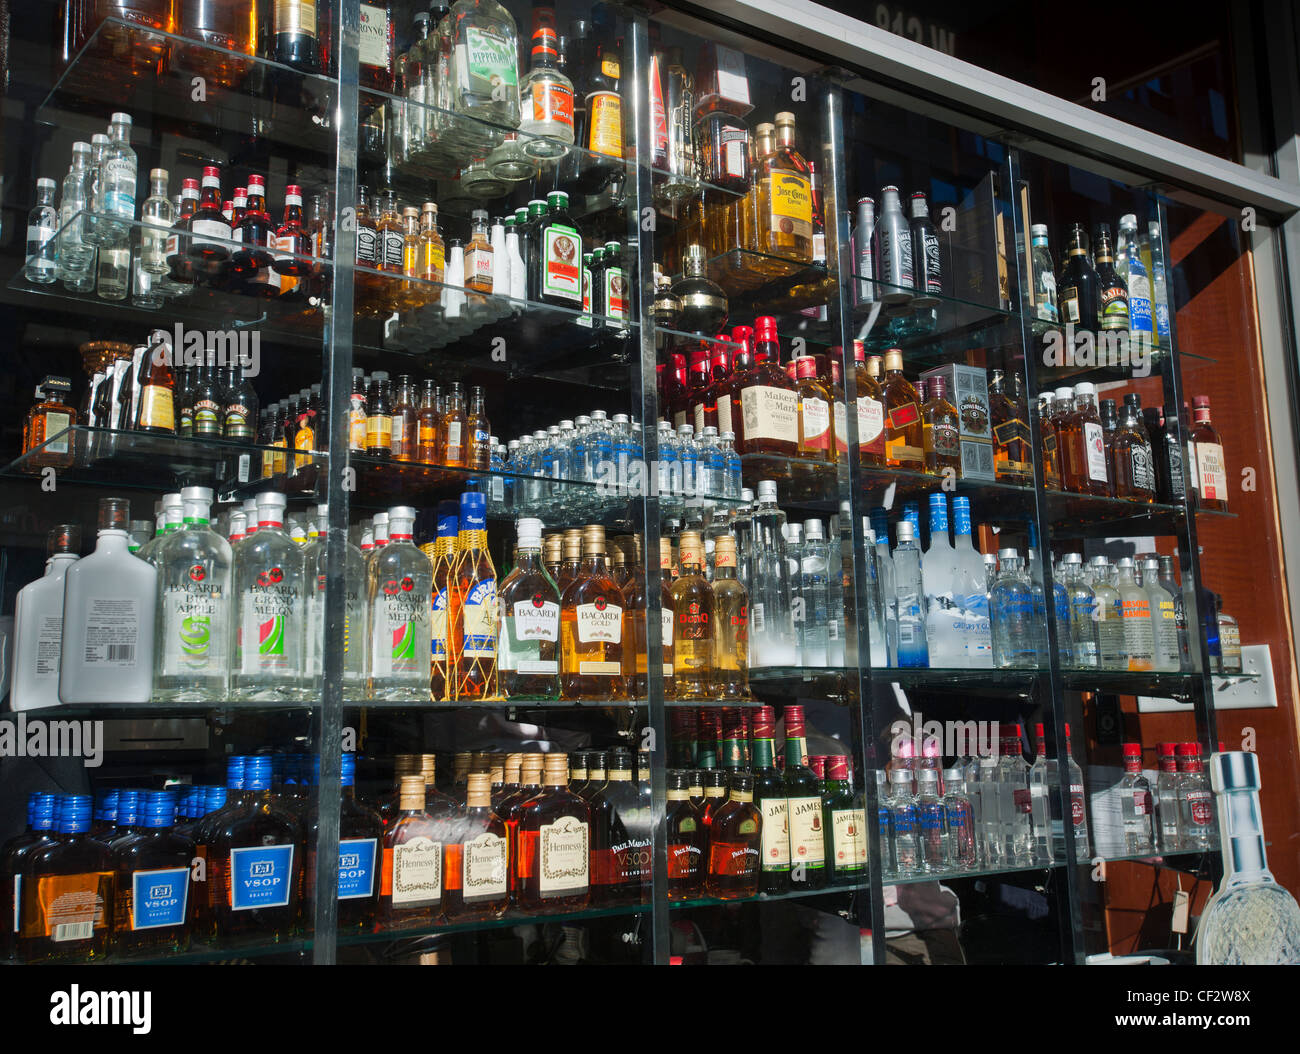 A selection of bottles in the window of a liquor store in New York is seen on Tuesday, February 28, 2012. (© Richard Stock Photo